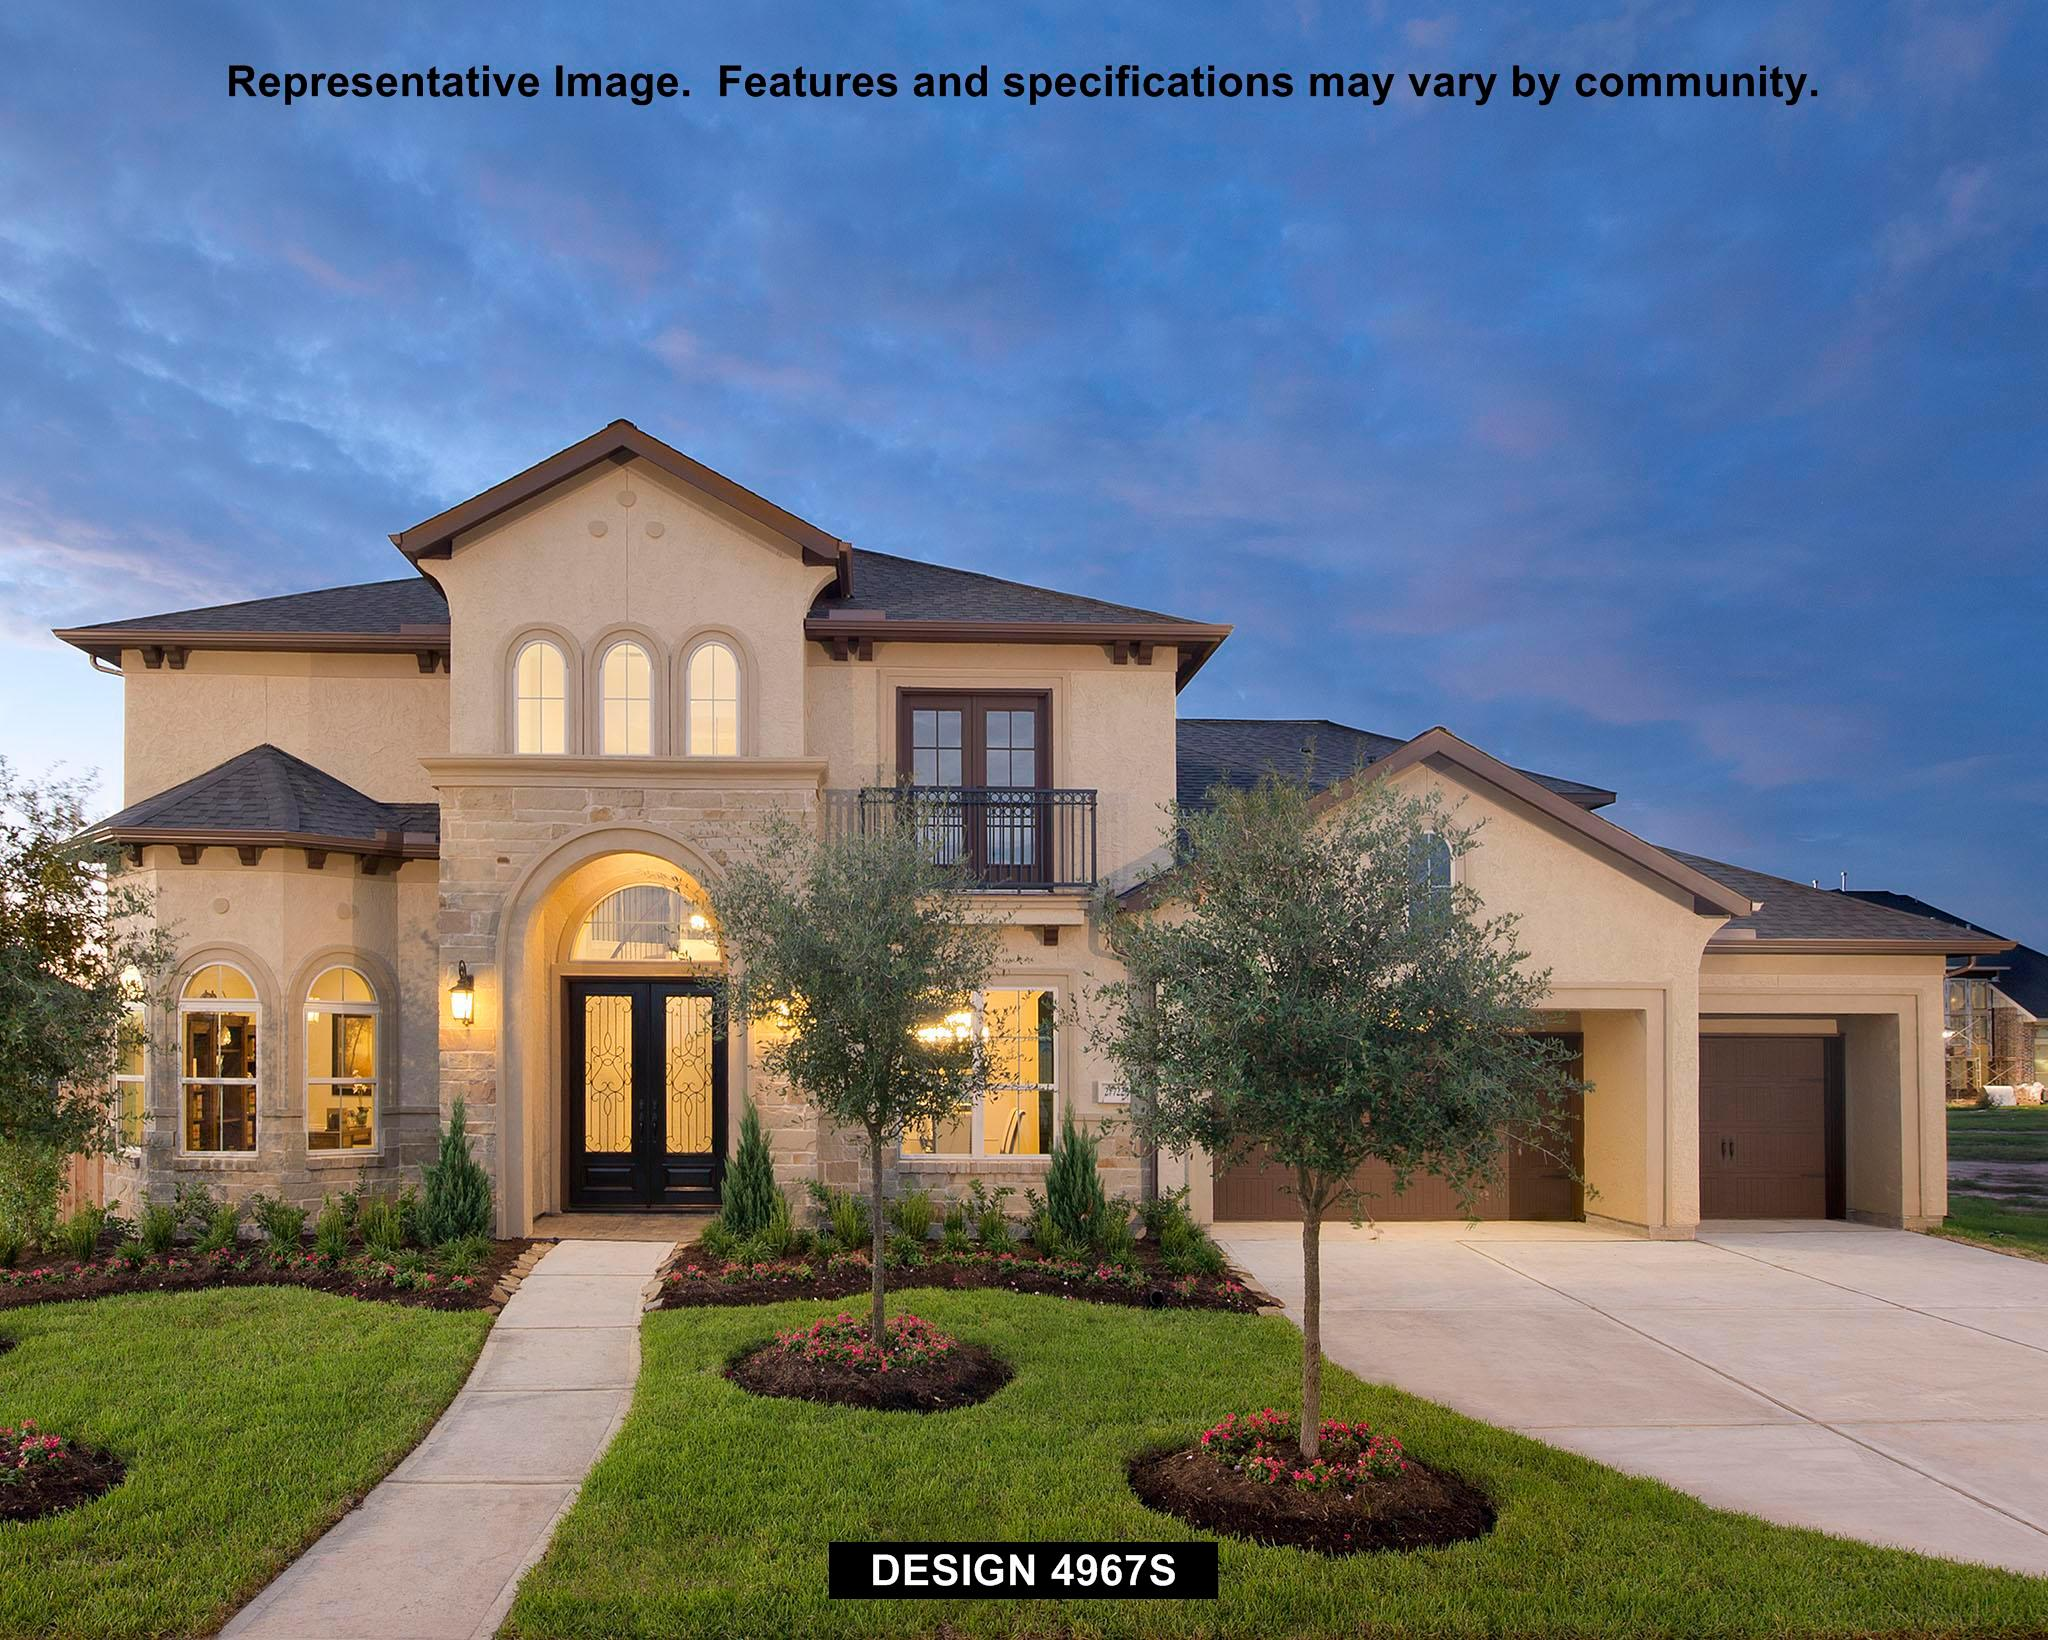 Single Family for Sale at Southlake 75'/80' - Waterfront Series - 4967s 3435 Magnolia Shores Lane Pearland, Texas 77584 United States